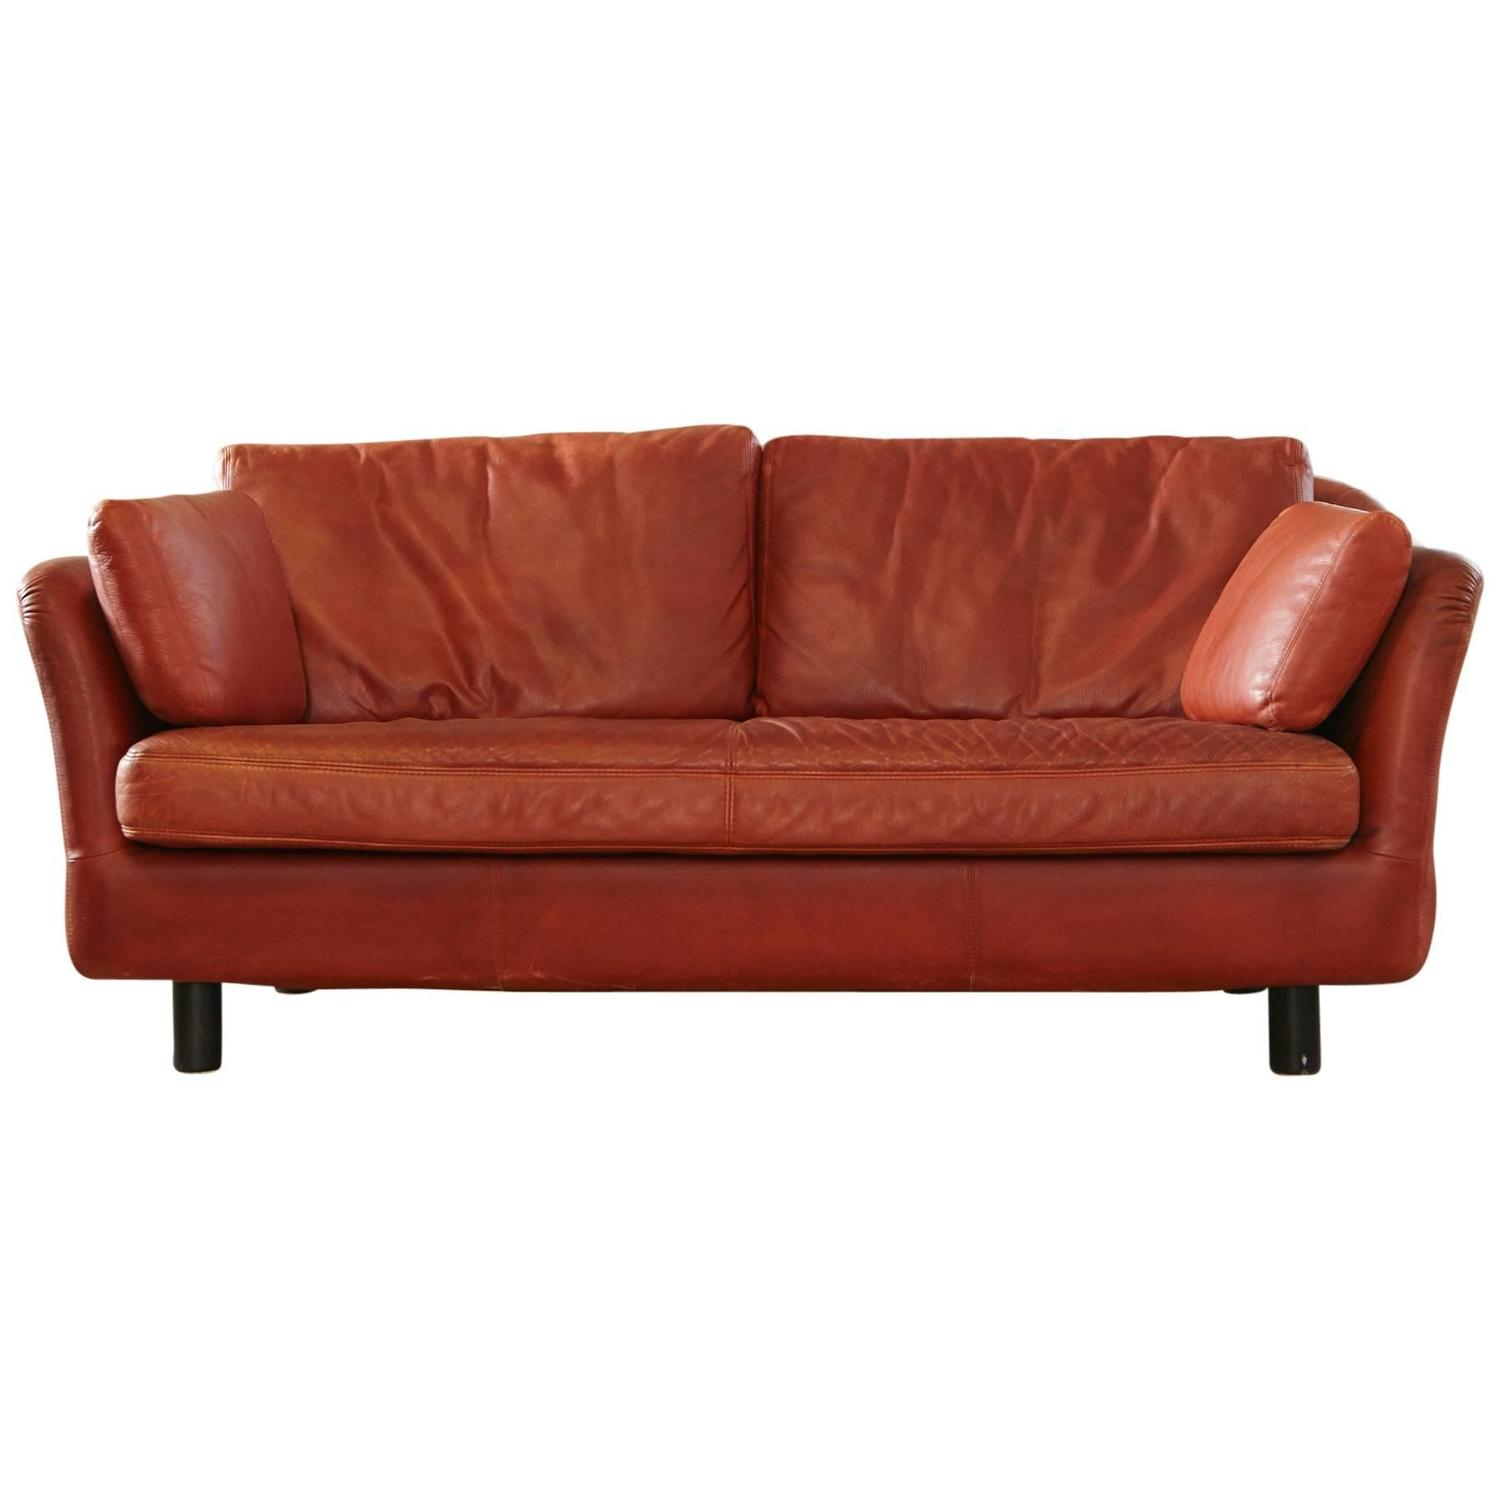 Leather Sofa Sale India: Indian Red Leather Two-Seat Sofa By DUX, Sweden At 1stdibs